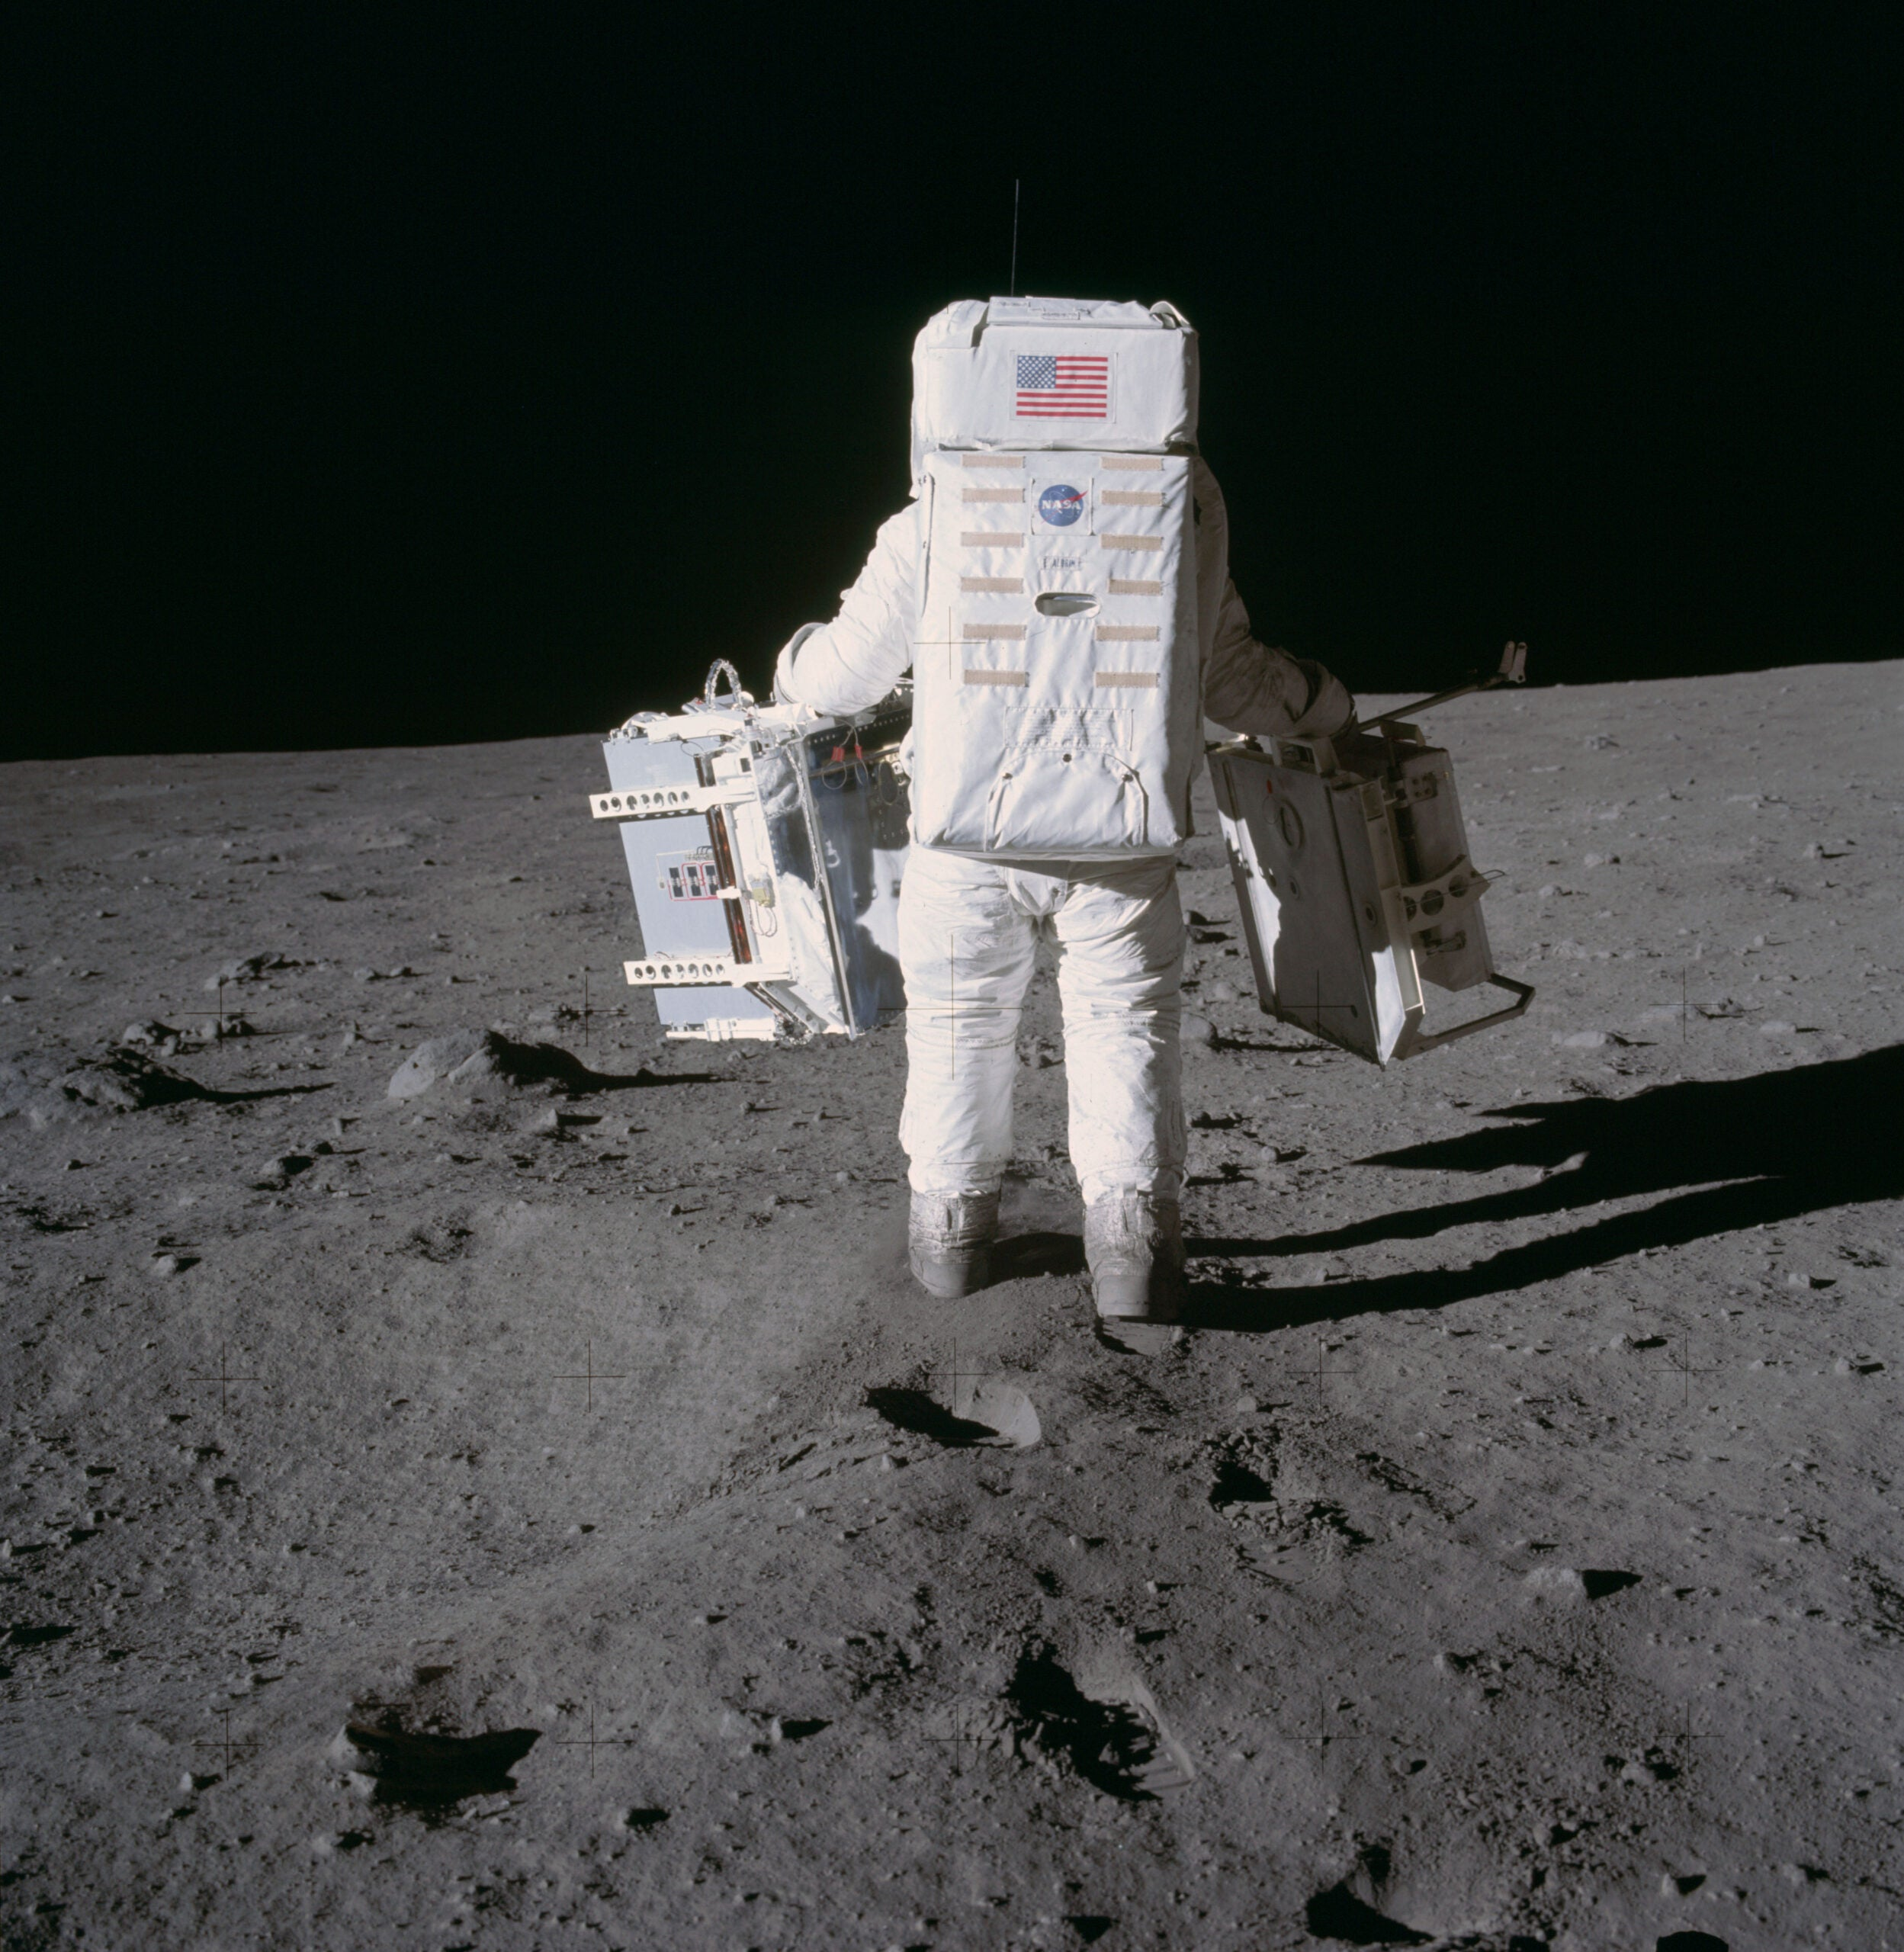 Why doesn't anyone live on the moon yet?